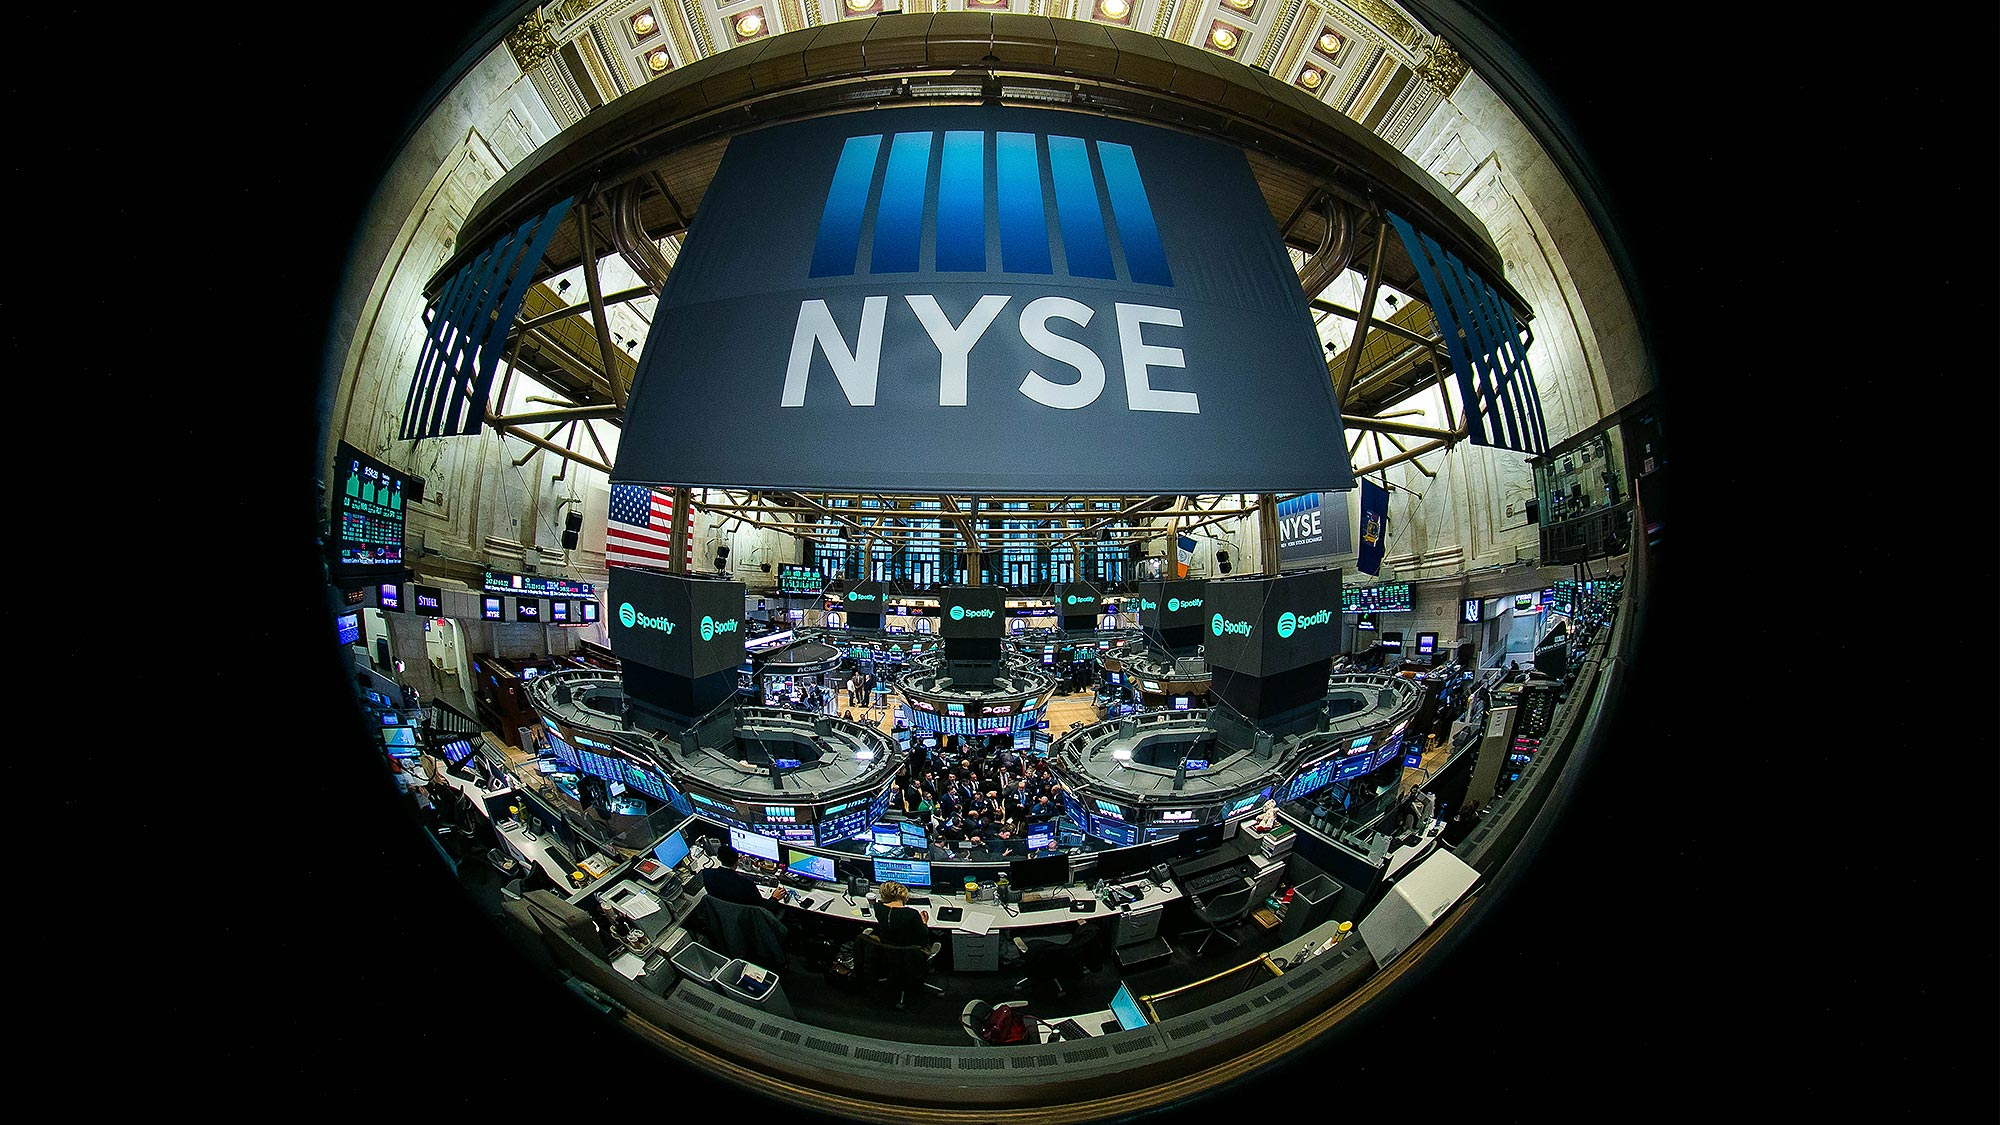 spotify-nyse-wall-street